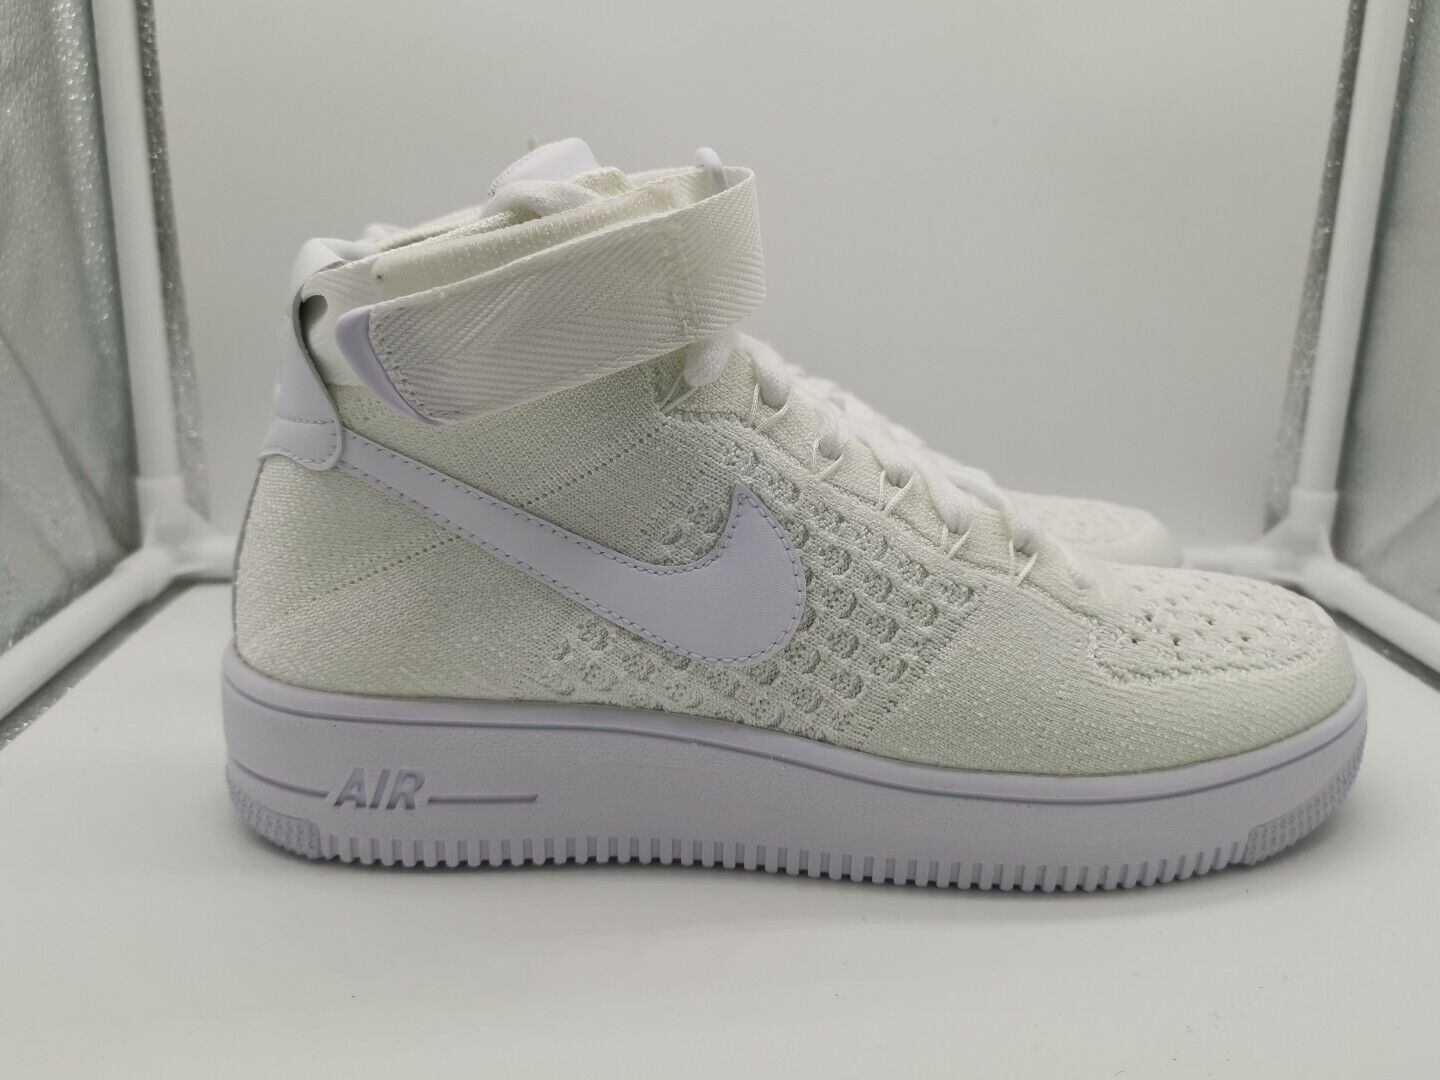 Nike Air Force 1 AF1 Ultra Flyknit Mid Triple White 817420-102